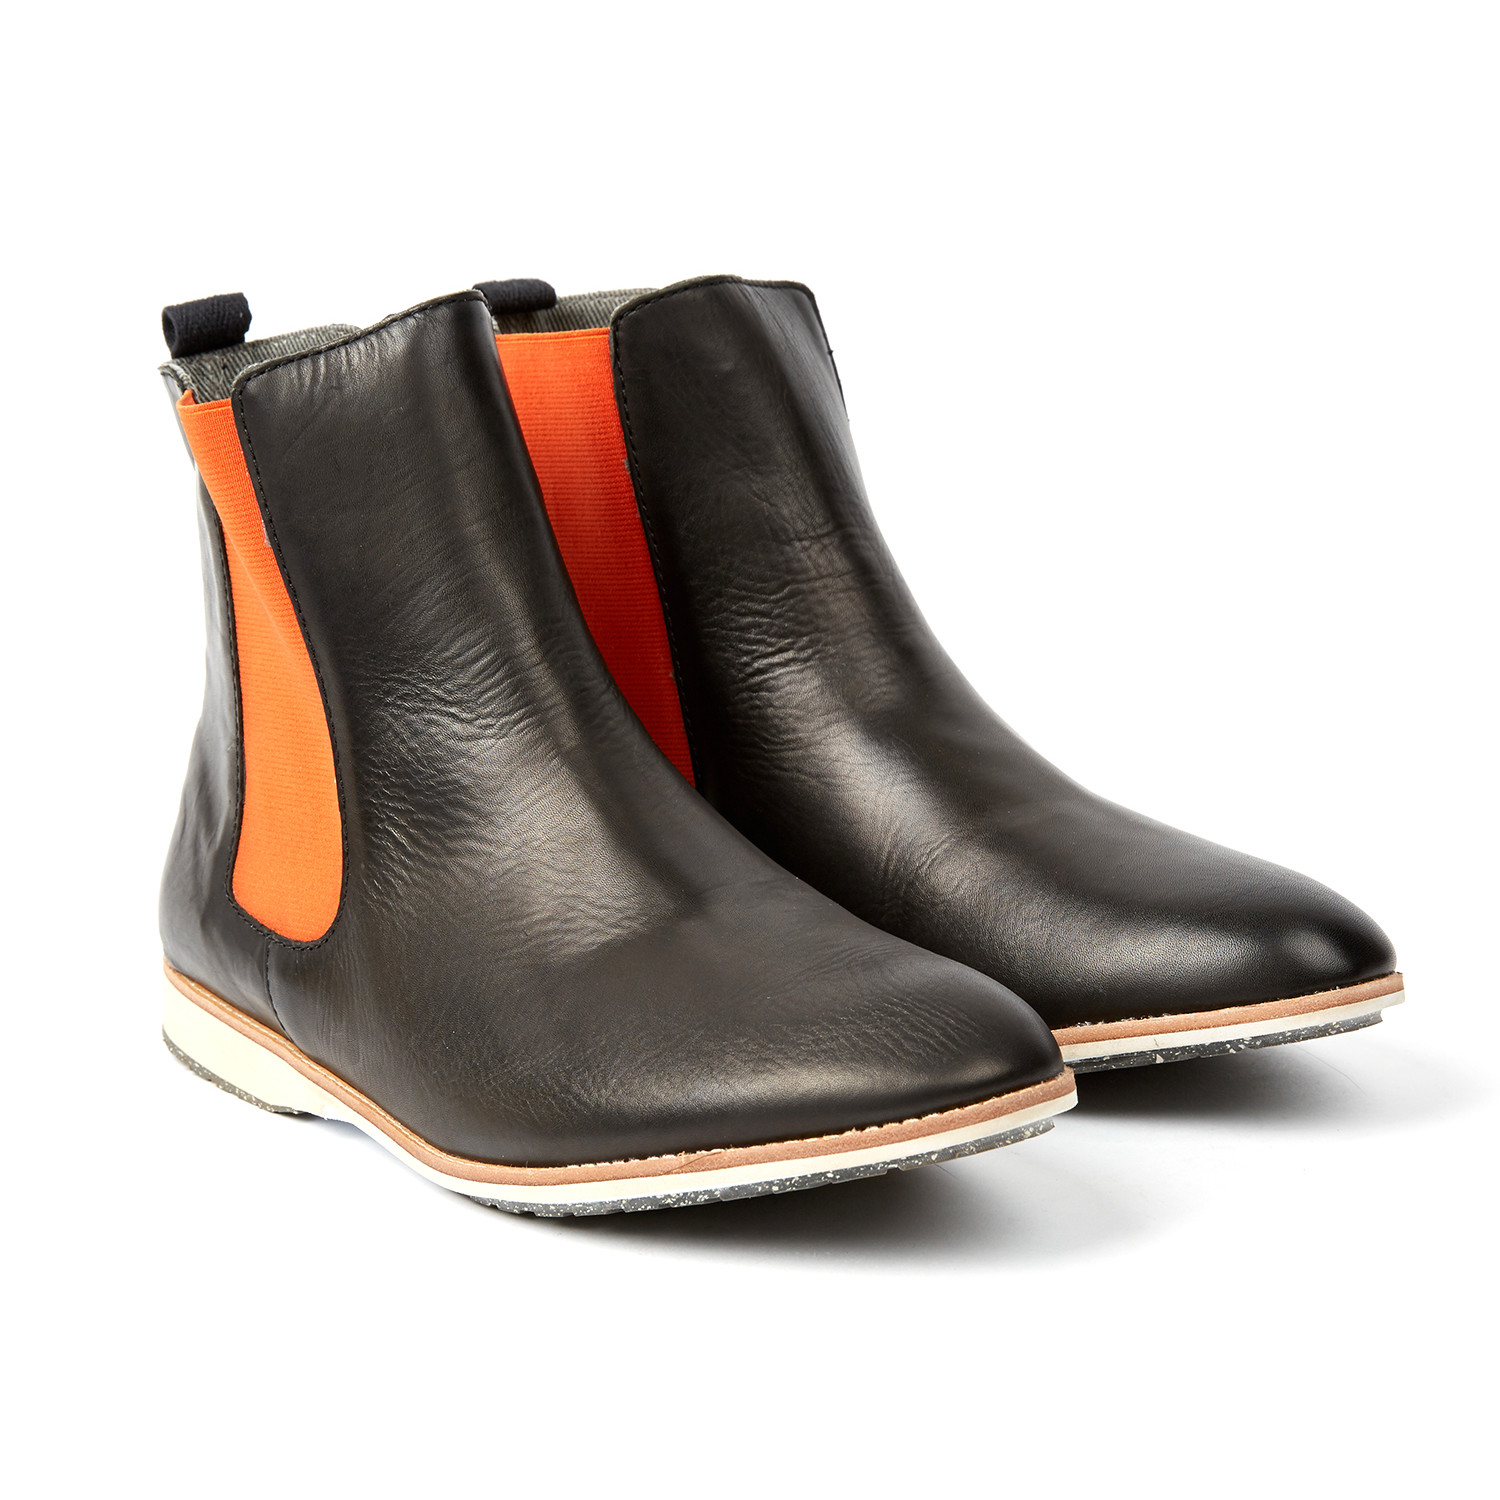 0f2185380 Chelsea Boot // Black + Orange (US: 9) - Rollie - Touch of Modern